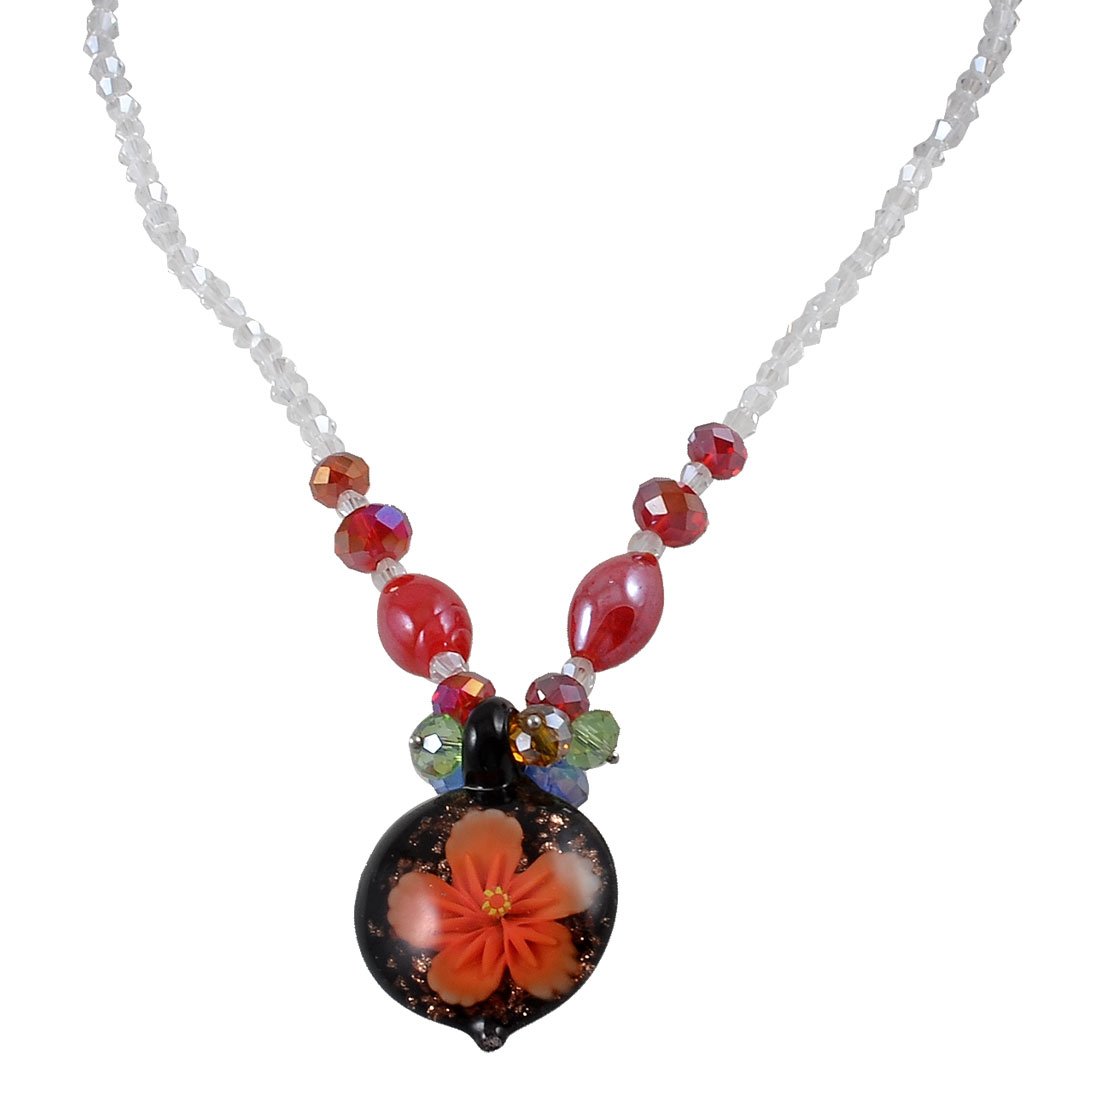 Ladies Colorful Faceted Crystal Beads Glitter Powder Flower Round Glass Pendant Necklace